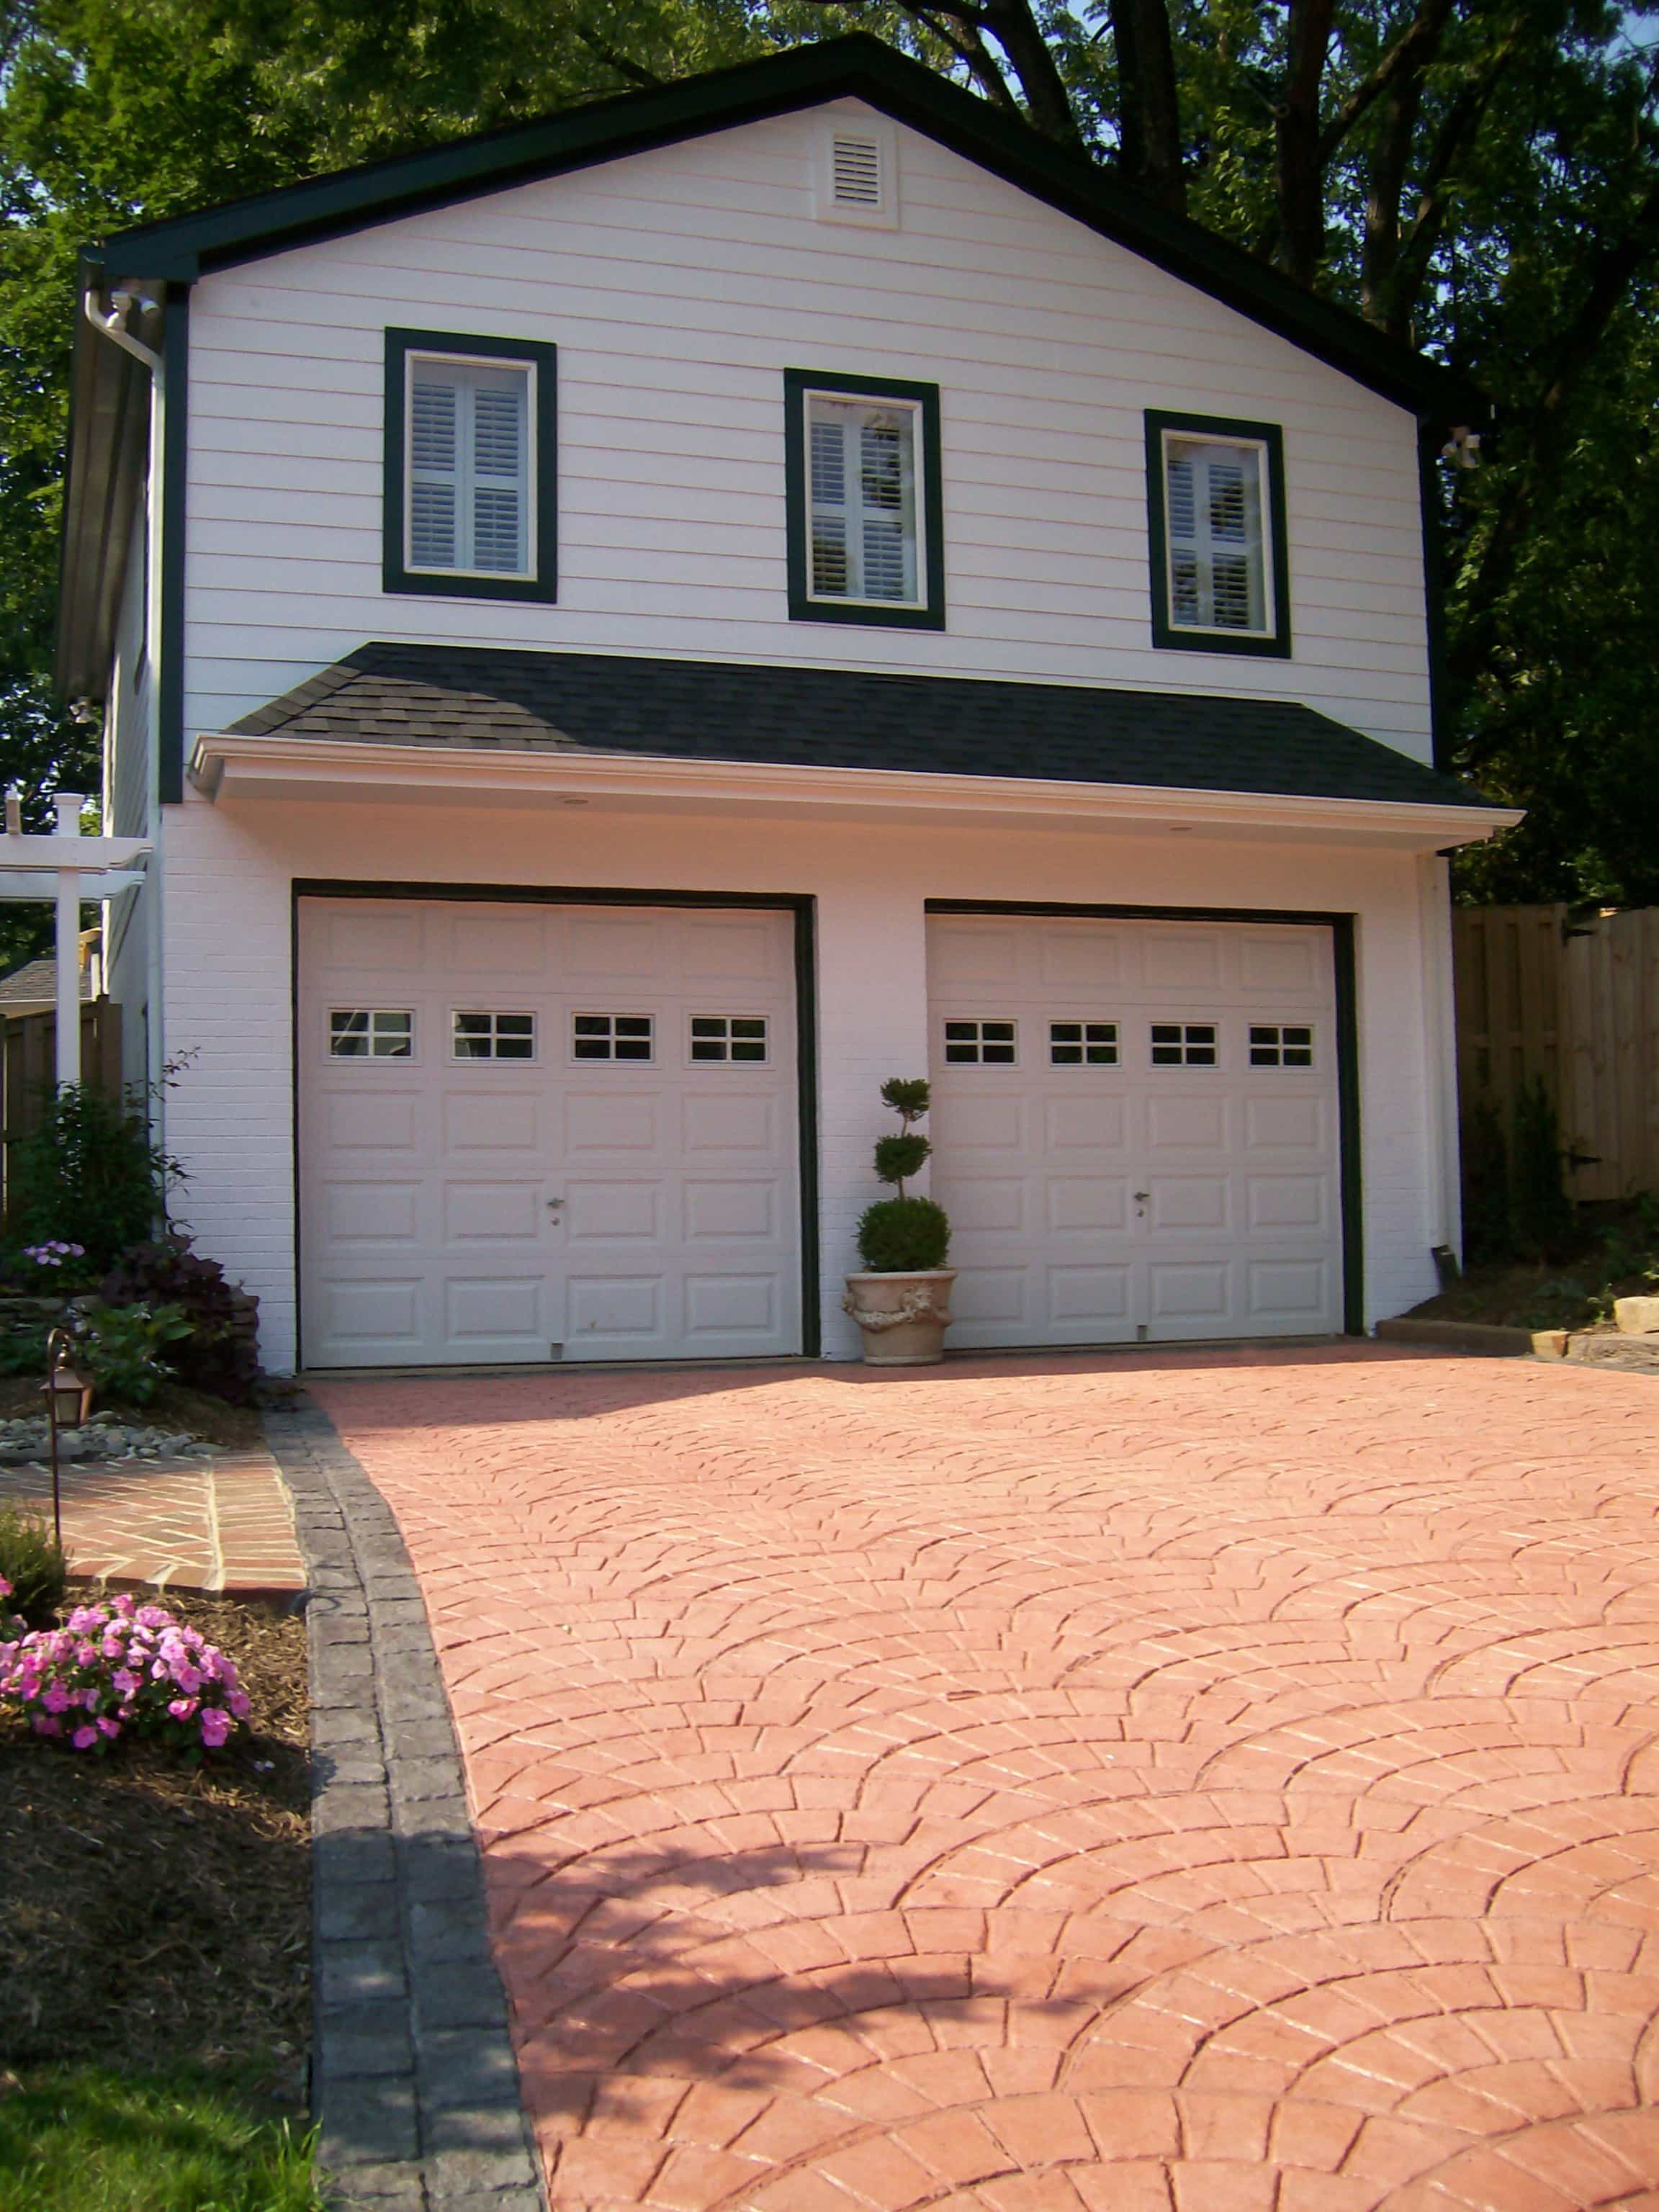 Featured Image of Driveway And Garage Of Cape Cod Home